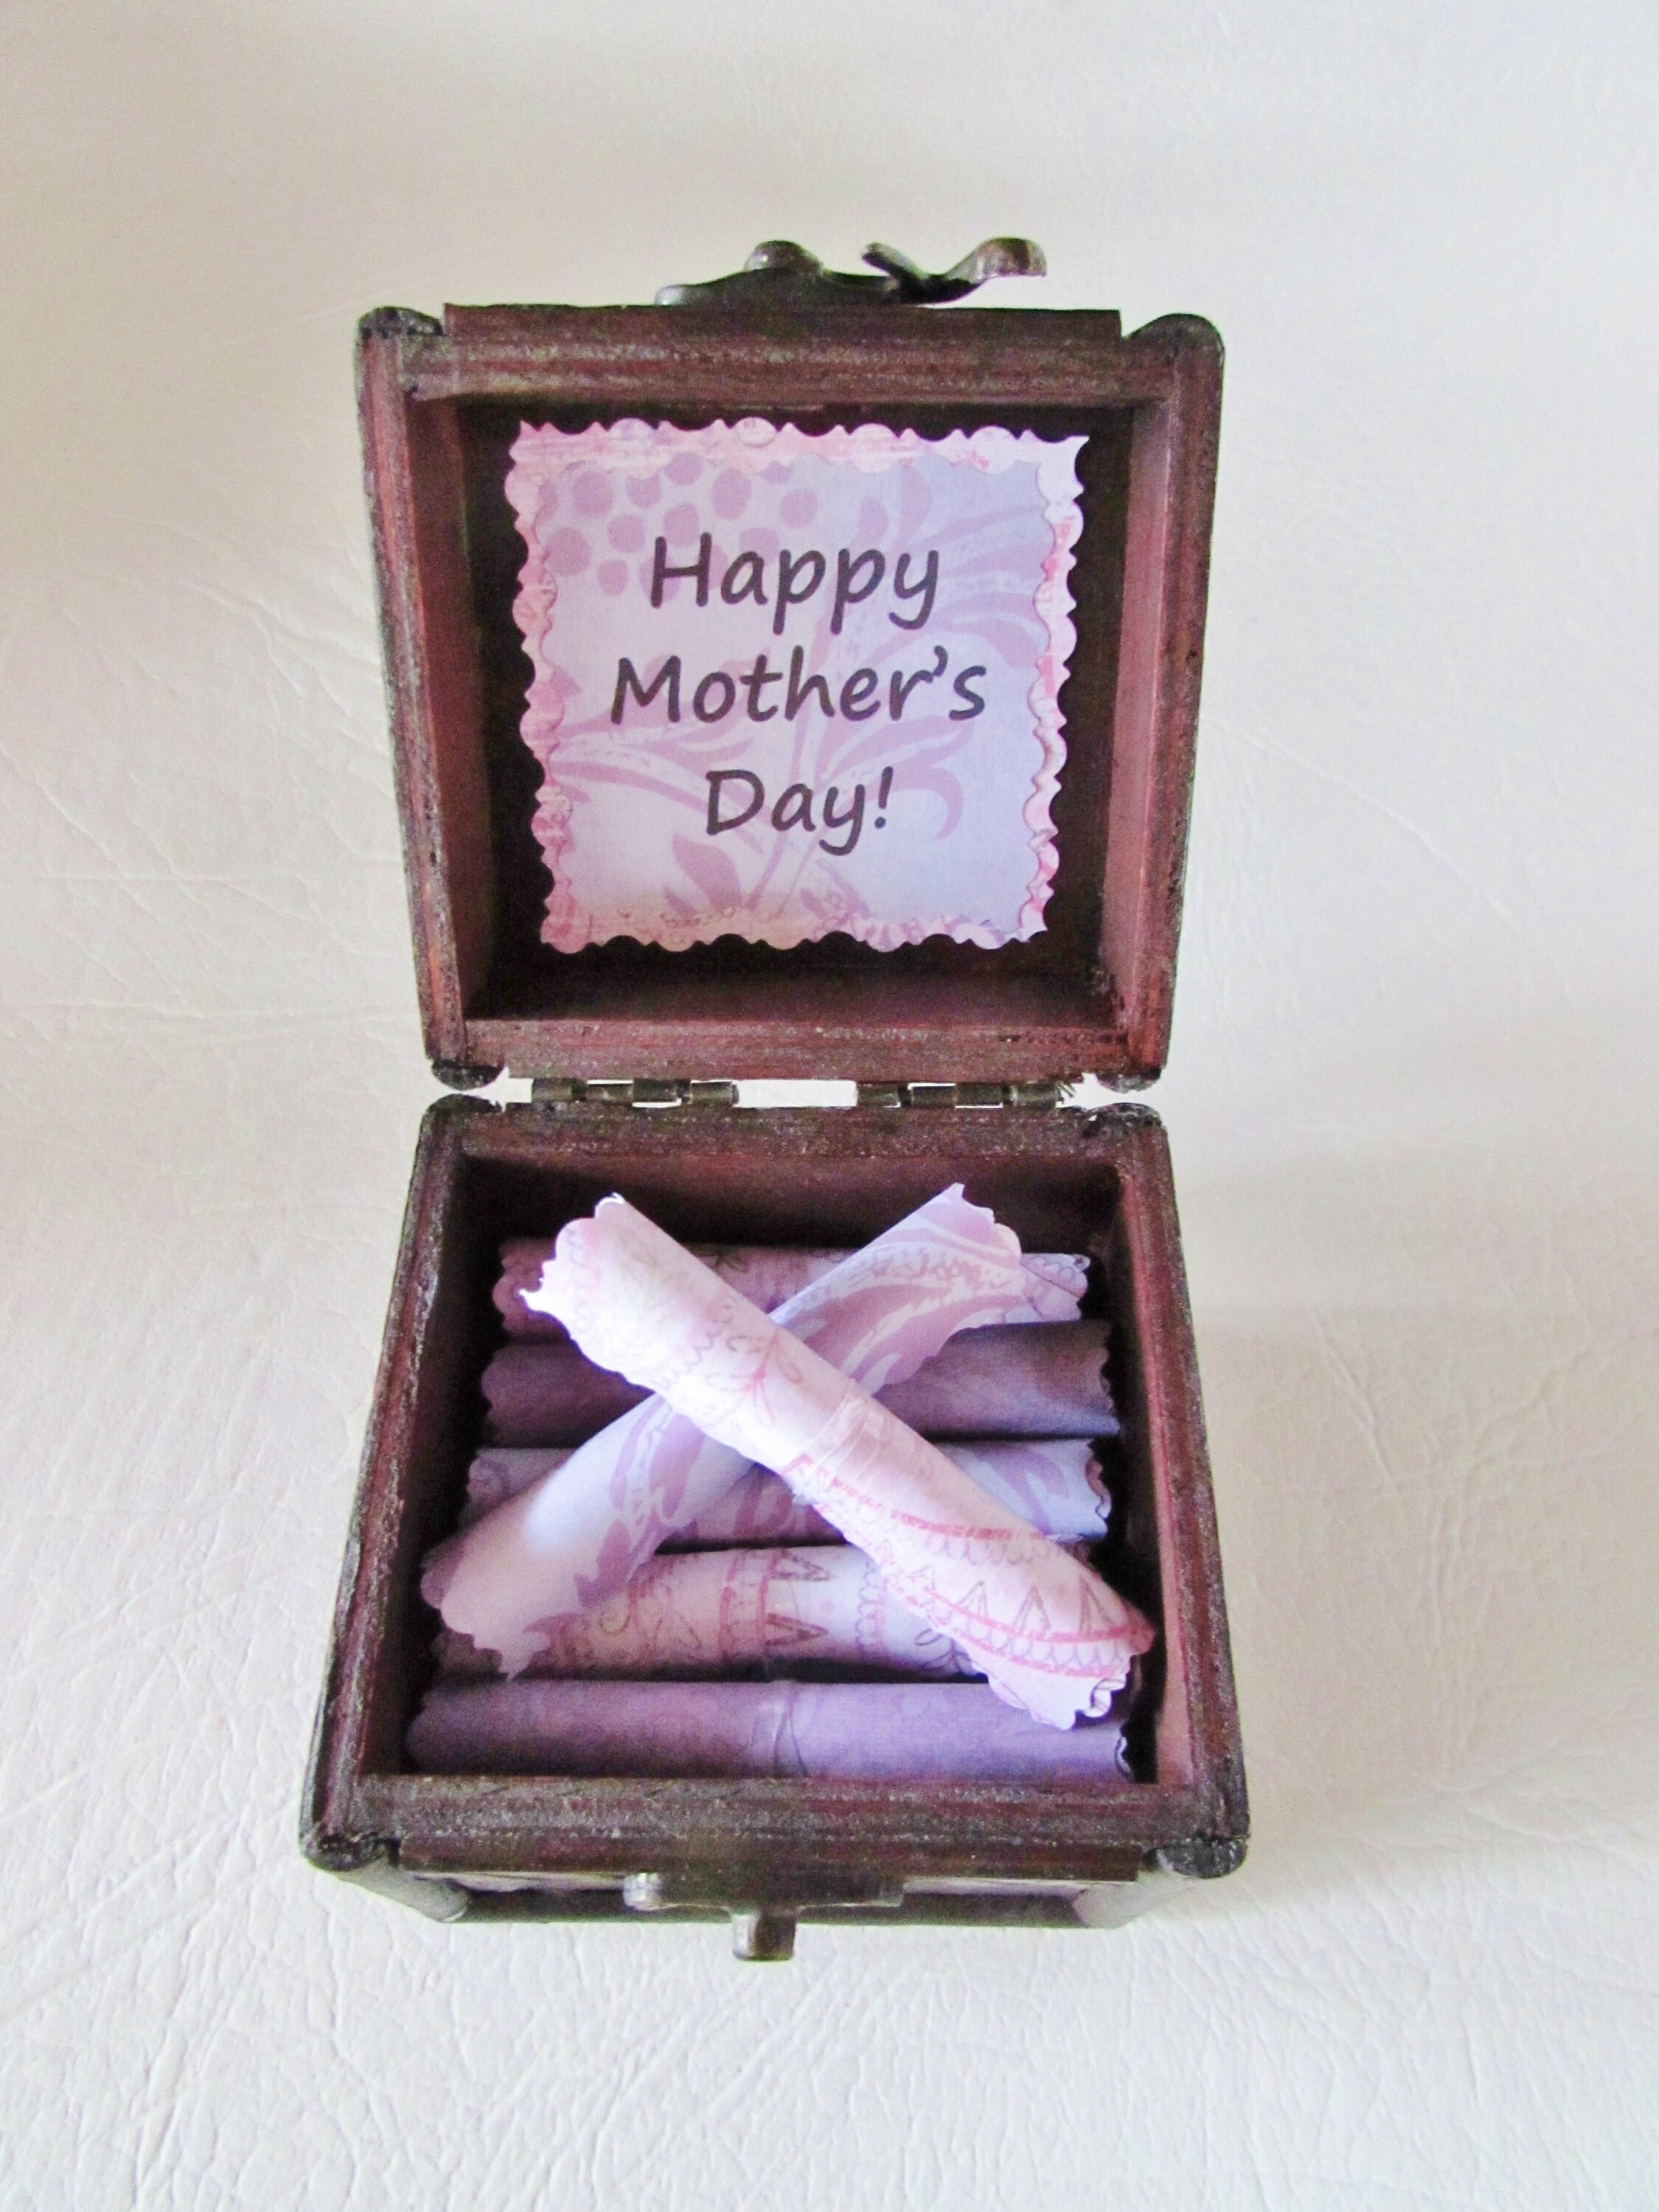 Happy Mothers Day Scroll Box Sweet Quotes About Moms In Wood